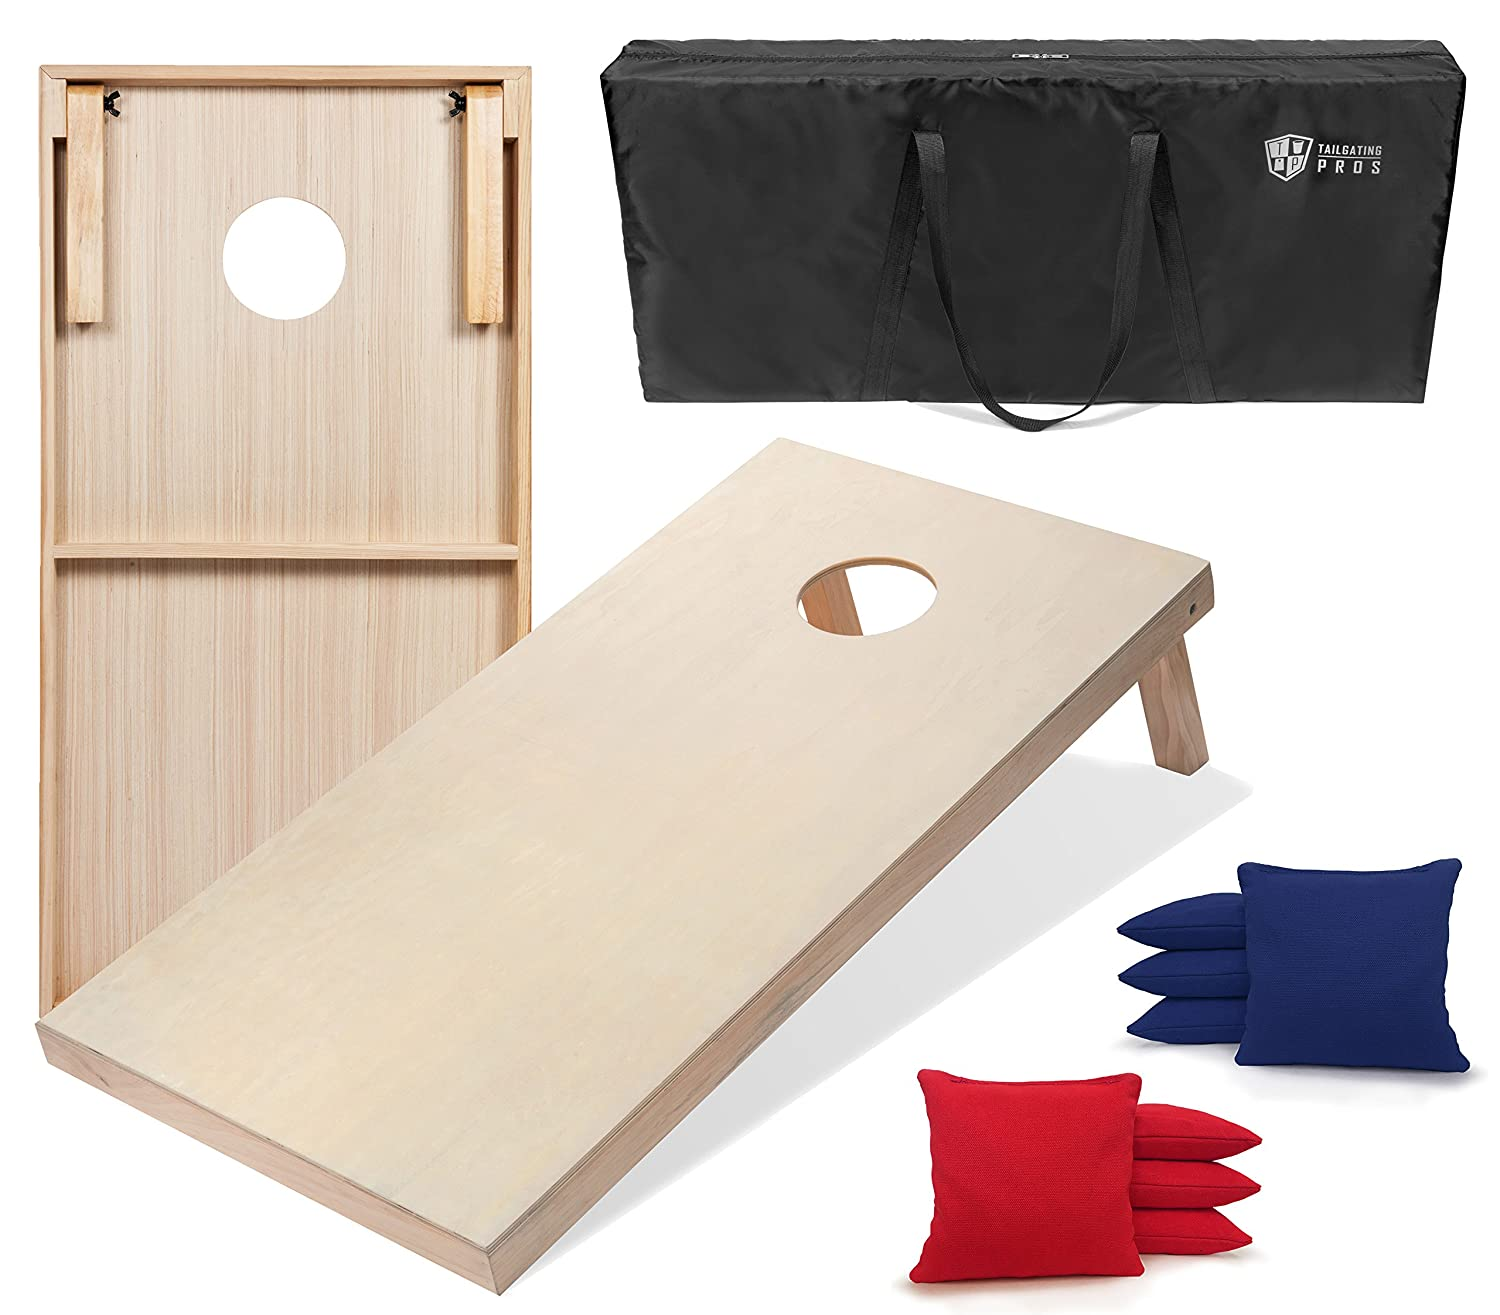 Tailgating Prosソリッド木製プレミアムCornhole Boards with Corn Filledバッグ – 規定サイズまたはオプションTailgatingサイズW / Carrying Case & LEDライト B07BS6Z8L8 Regulation w/ Carrying Case|Red/Royal Blue Red/Royal Blue Regulation w/ Carrying Case